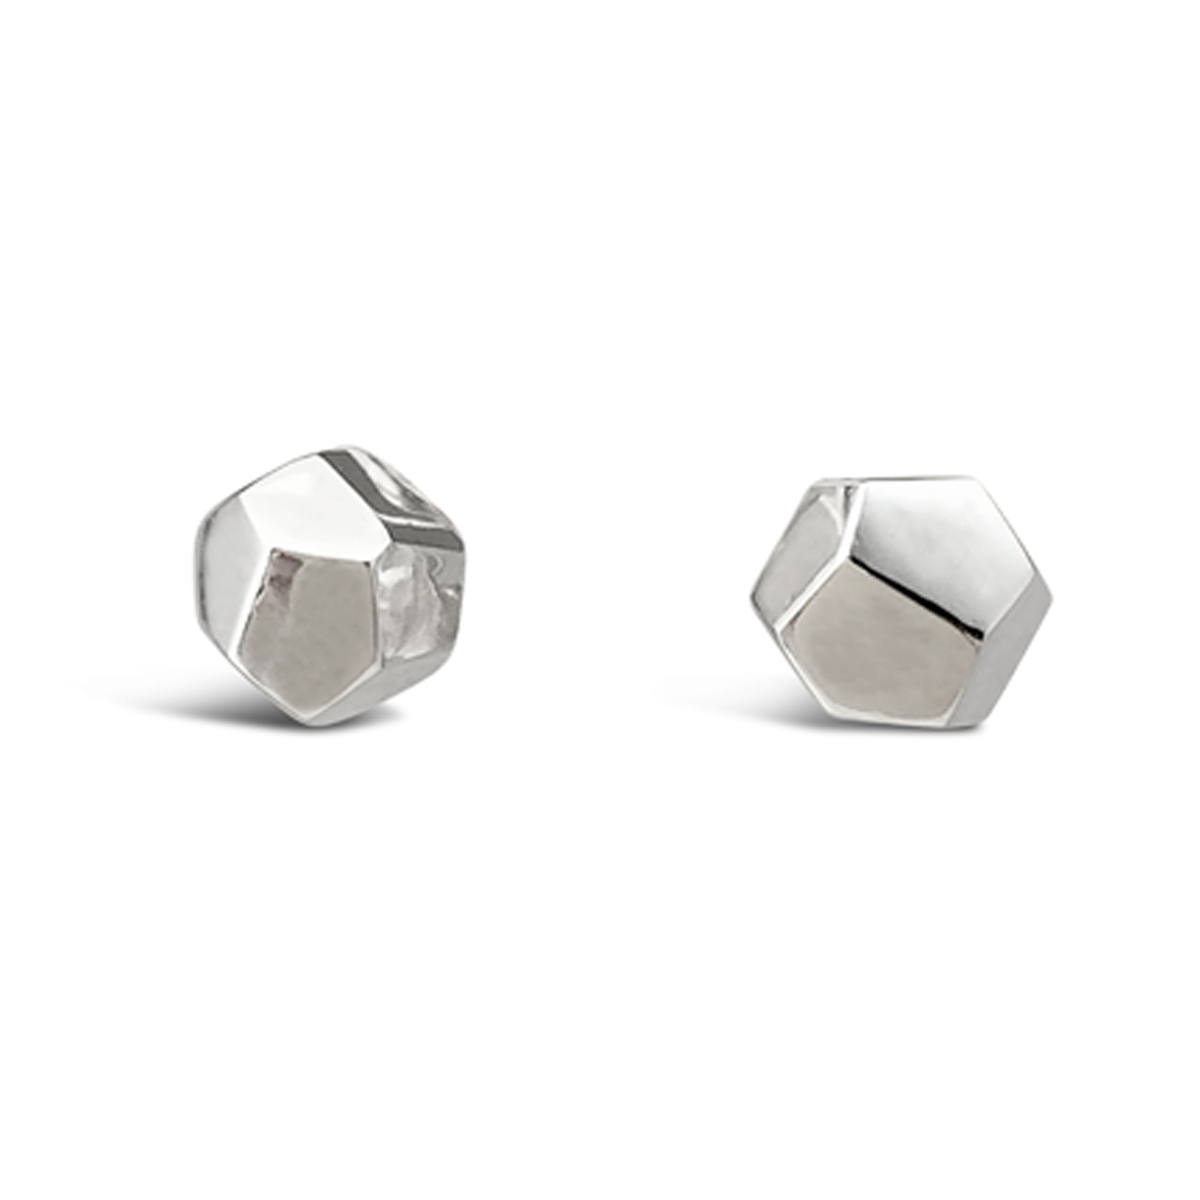 Decca earrings silver 6mm